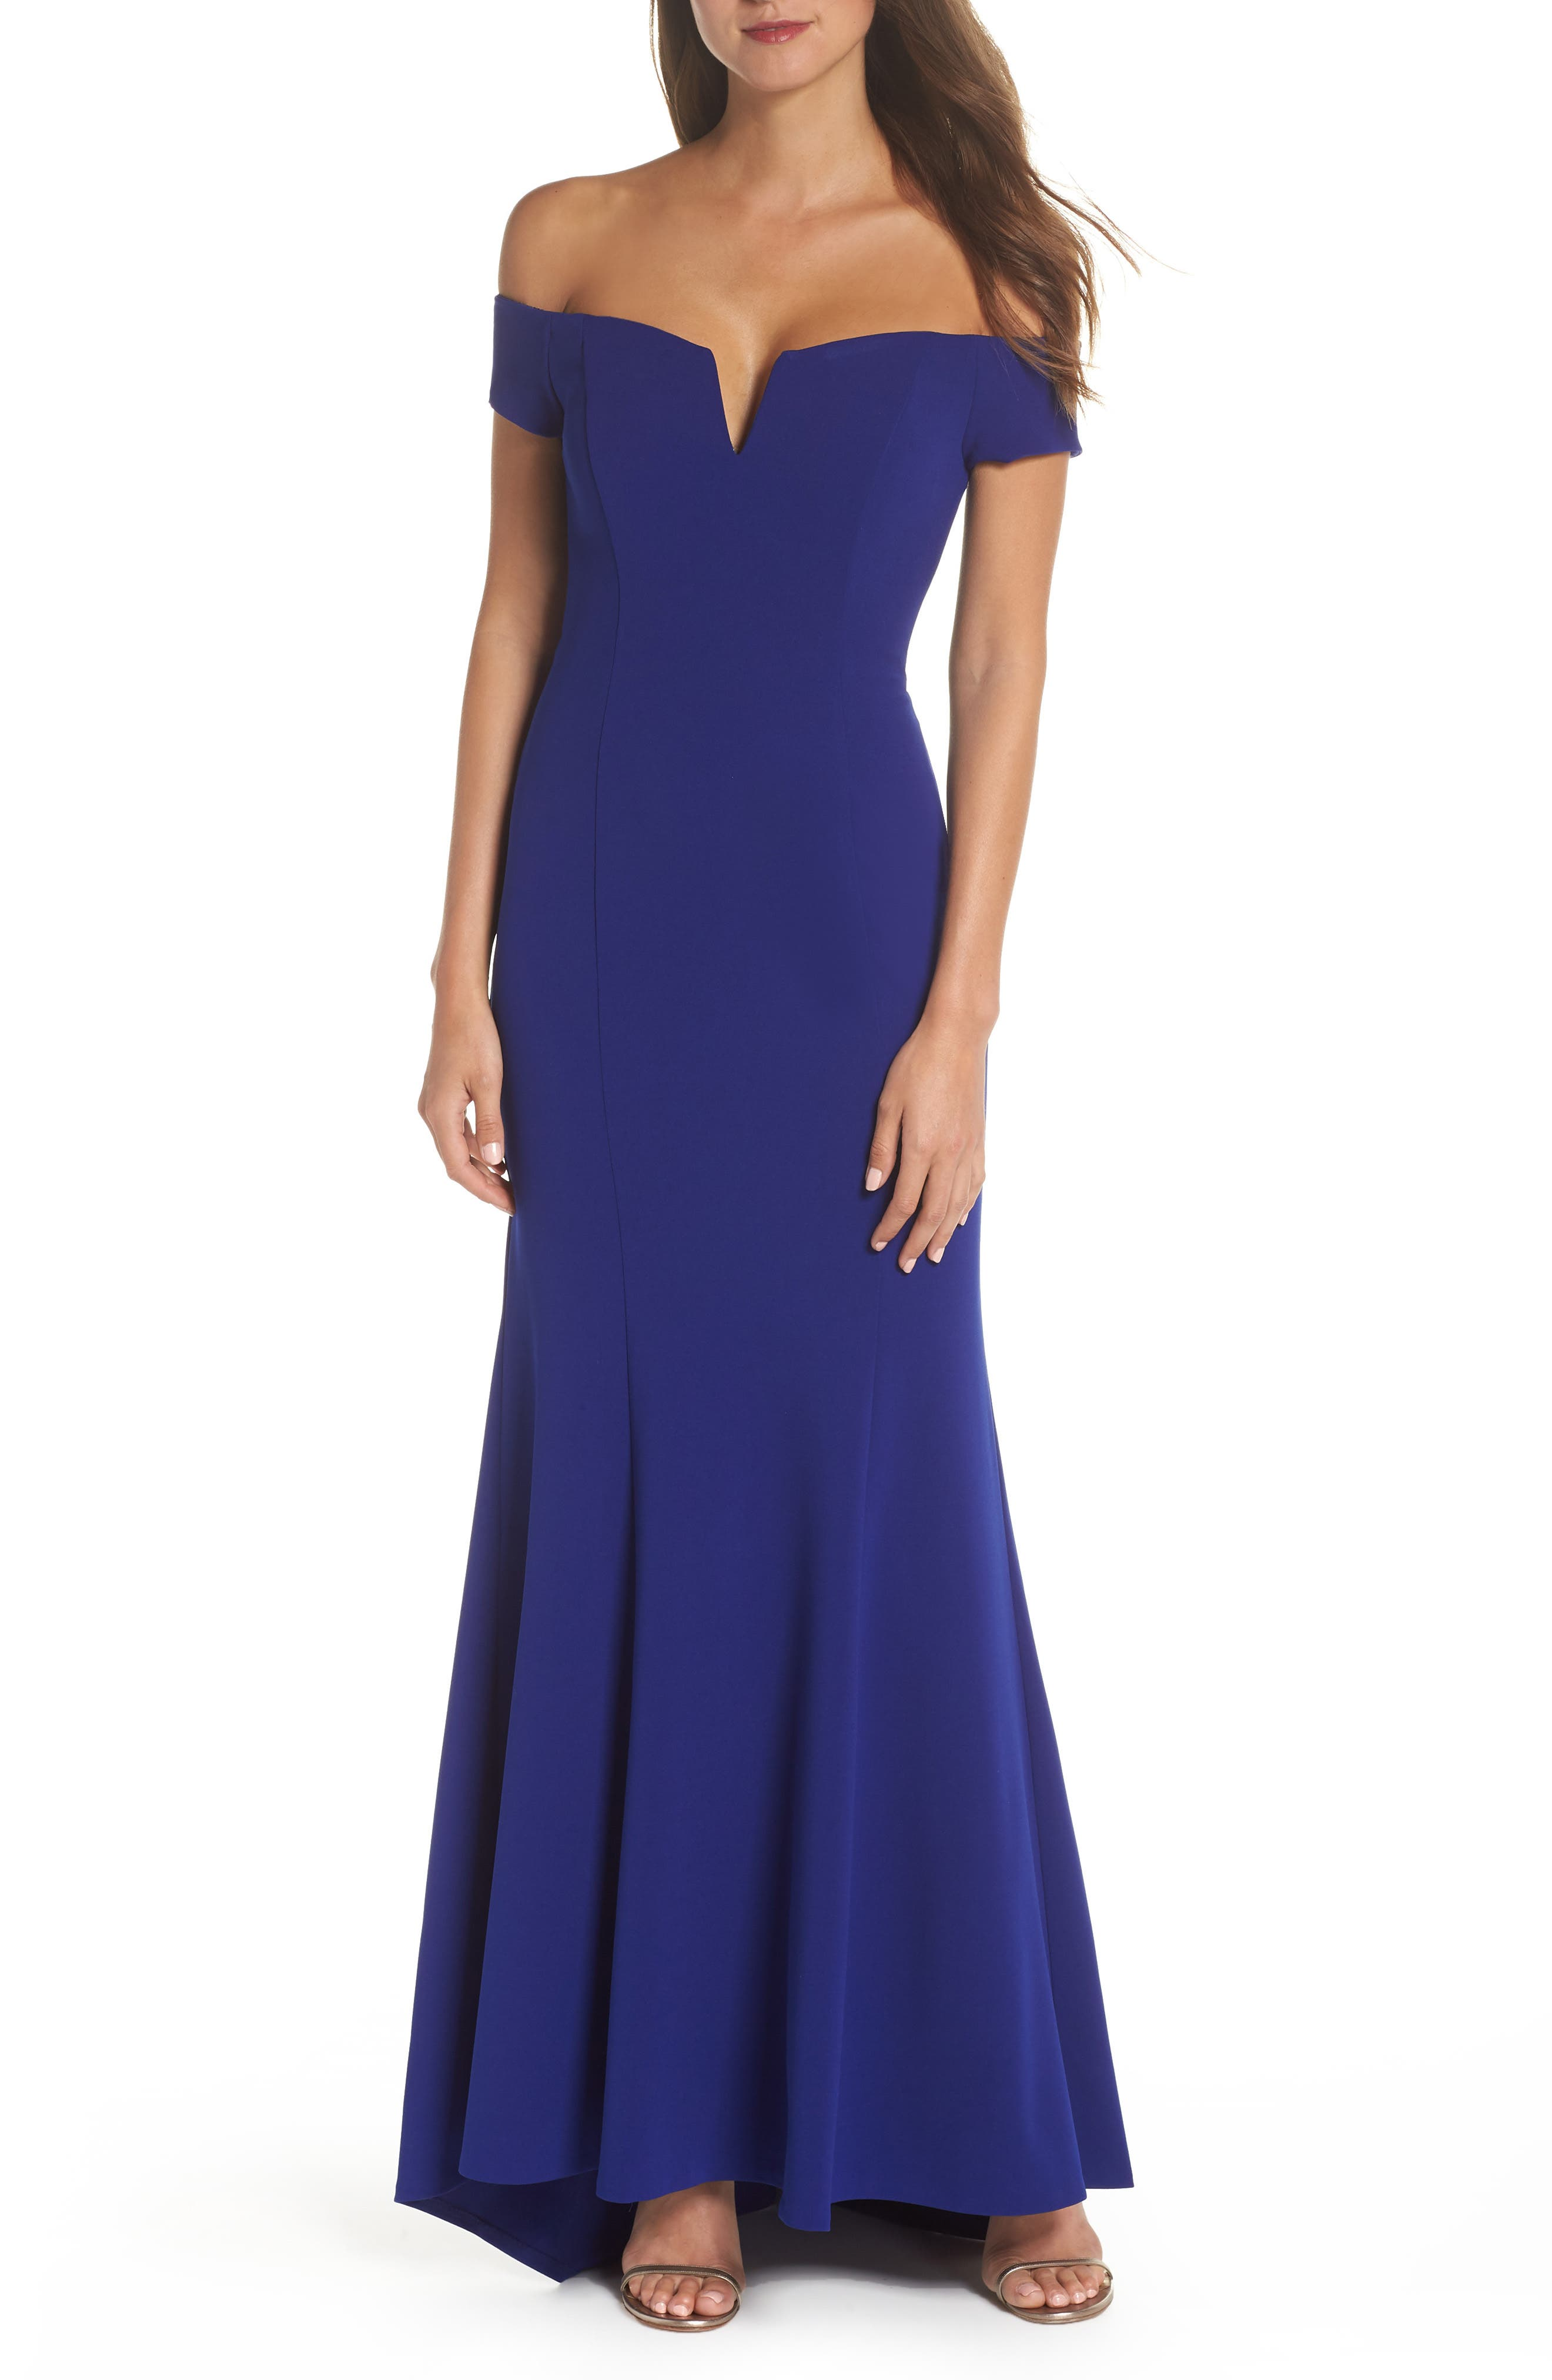 Vince Camuto Notched Off The Shoulder Trumpet Gown, Blue